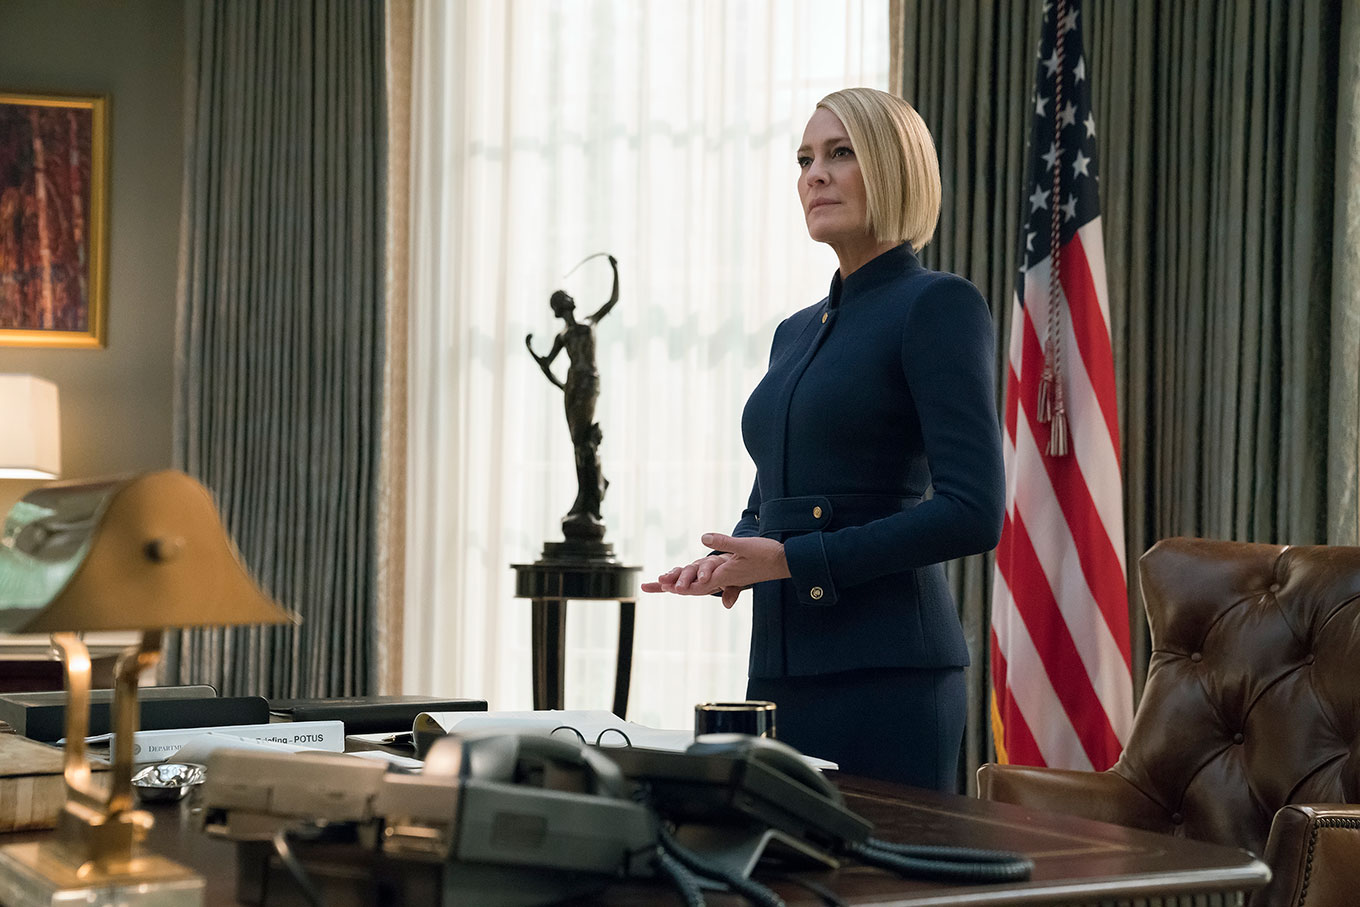 Claire standing in the oval office